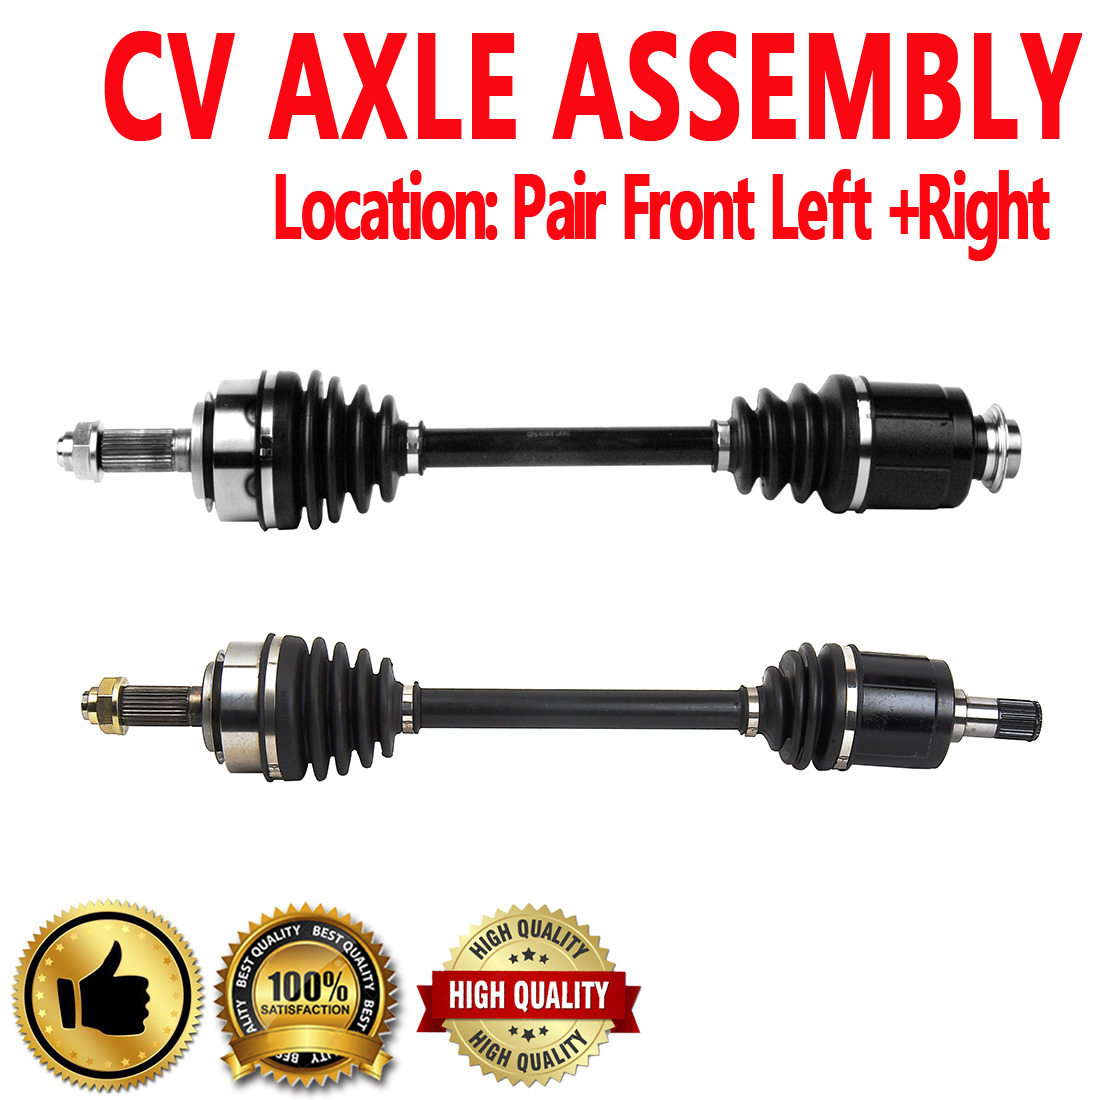 Front Pair CV Axle Assembly for ACURA TL 04-06 Automatic Transmission 1 of  1FREE Shipping See More